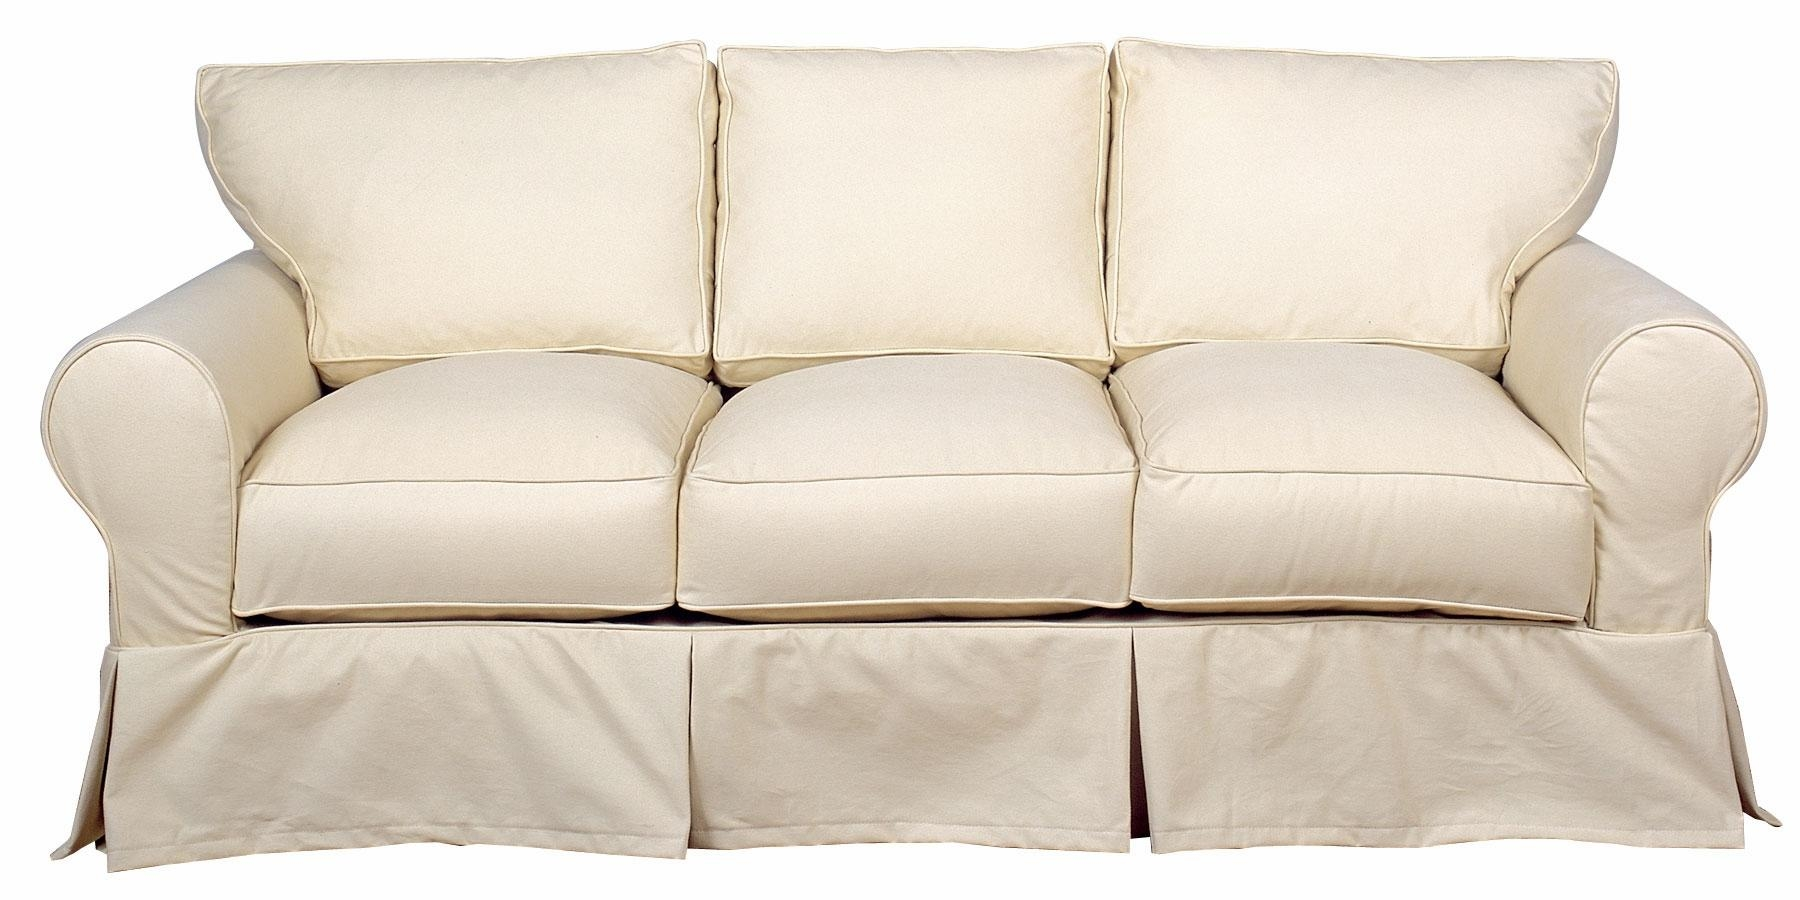 Sleeper Sofa Cover | Sofa Gallery | Kengire Inside Sleeper Sofa Slipcovers (Image 16 of 20)